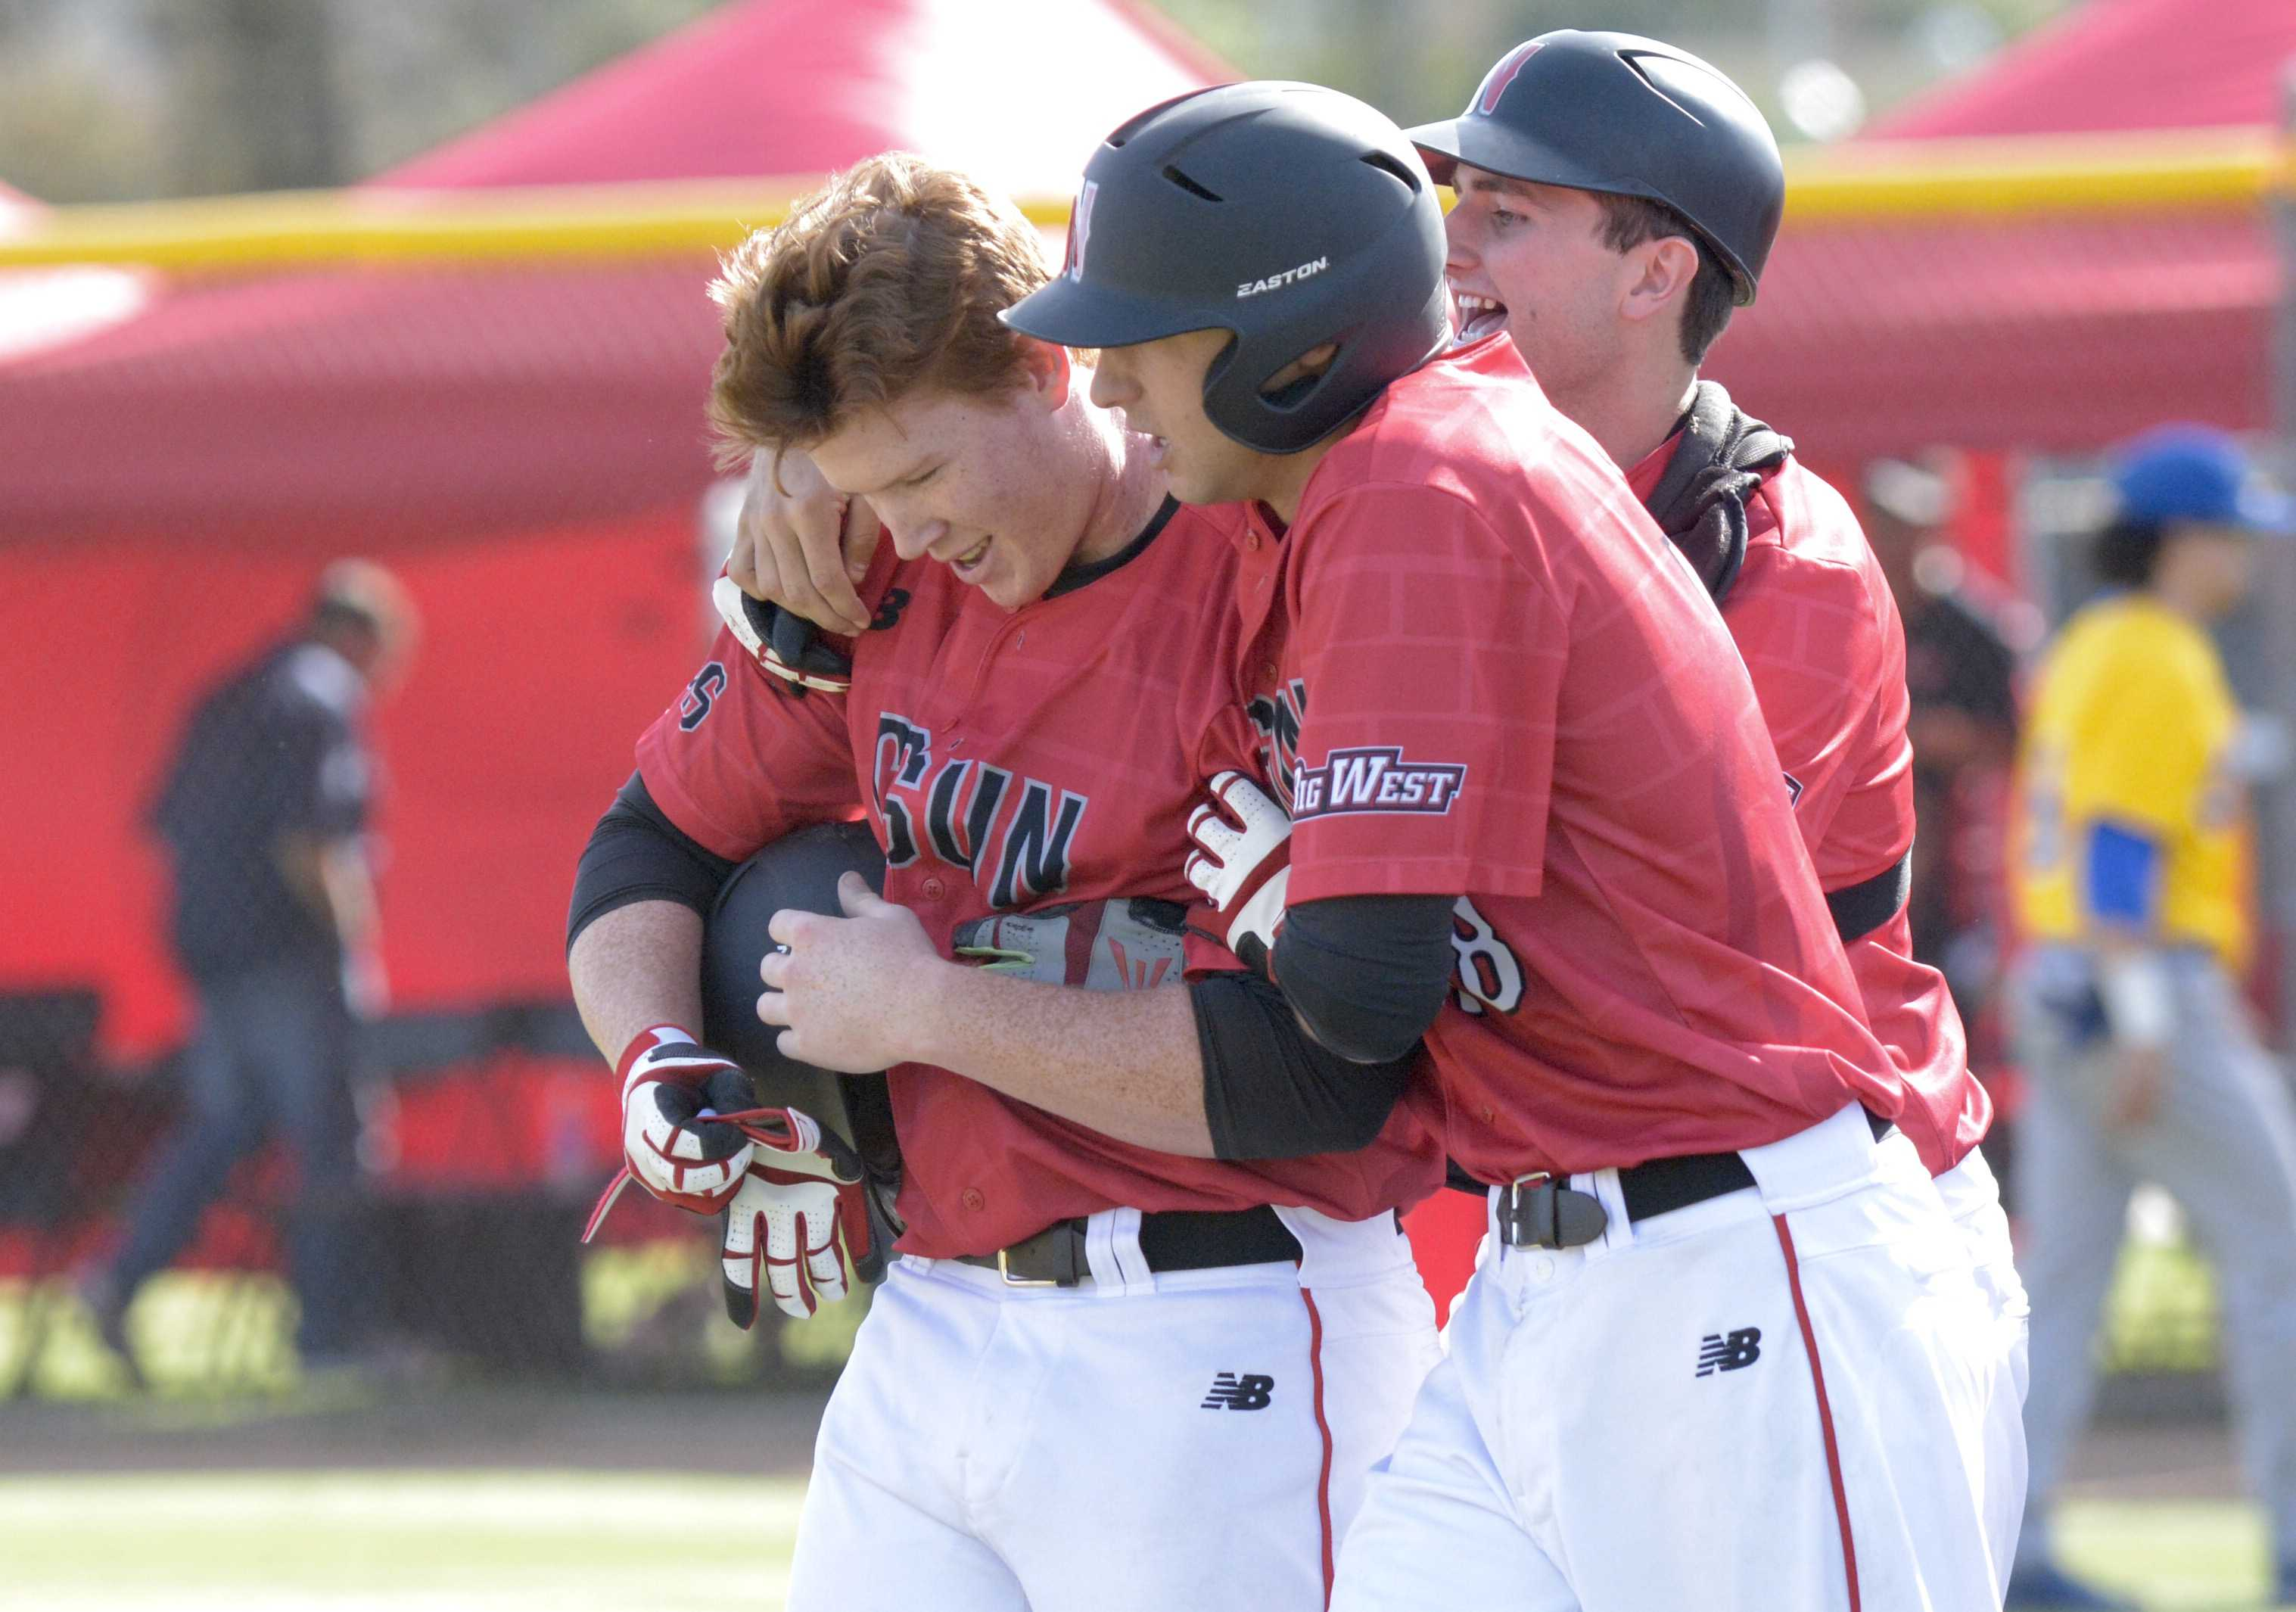 CSUN+freshman+Albee+Weiss+celebrating+with+his+teammates+as+he+gets+the+pinch-hitting+walk-off+walk+to+win+the+game+Sunday+afternoon+against+UC+Riverside.+Photo+credit%3A+Raul+Martinez